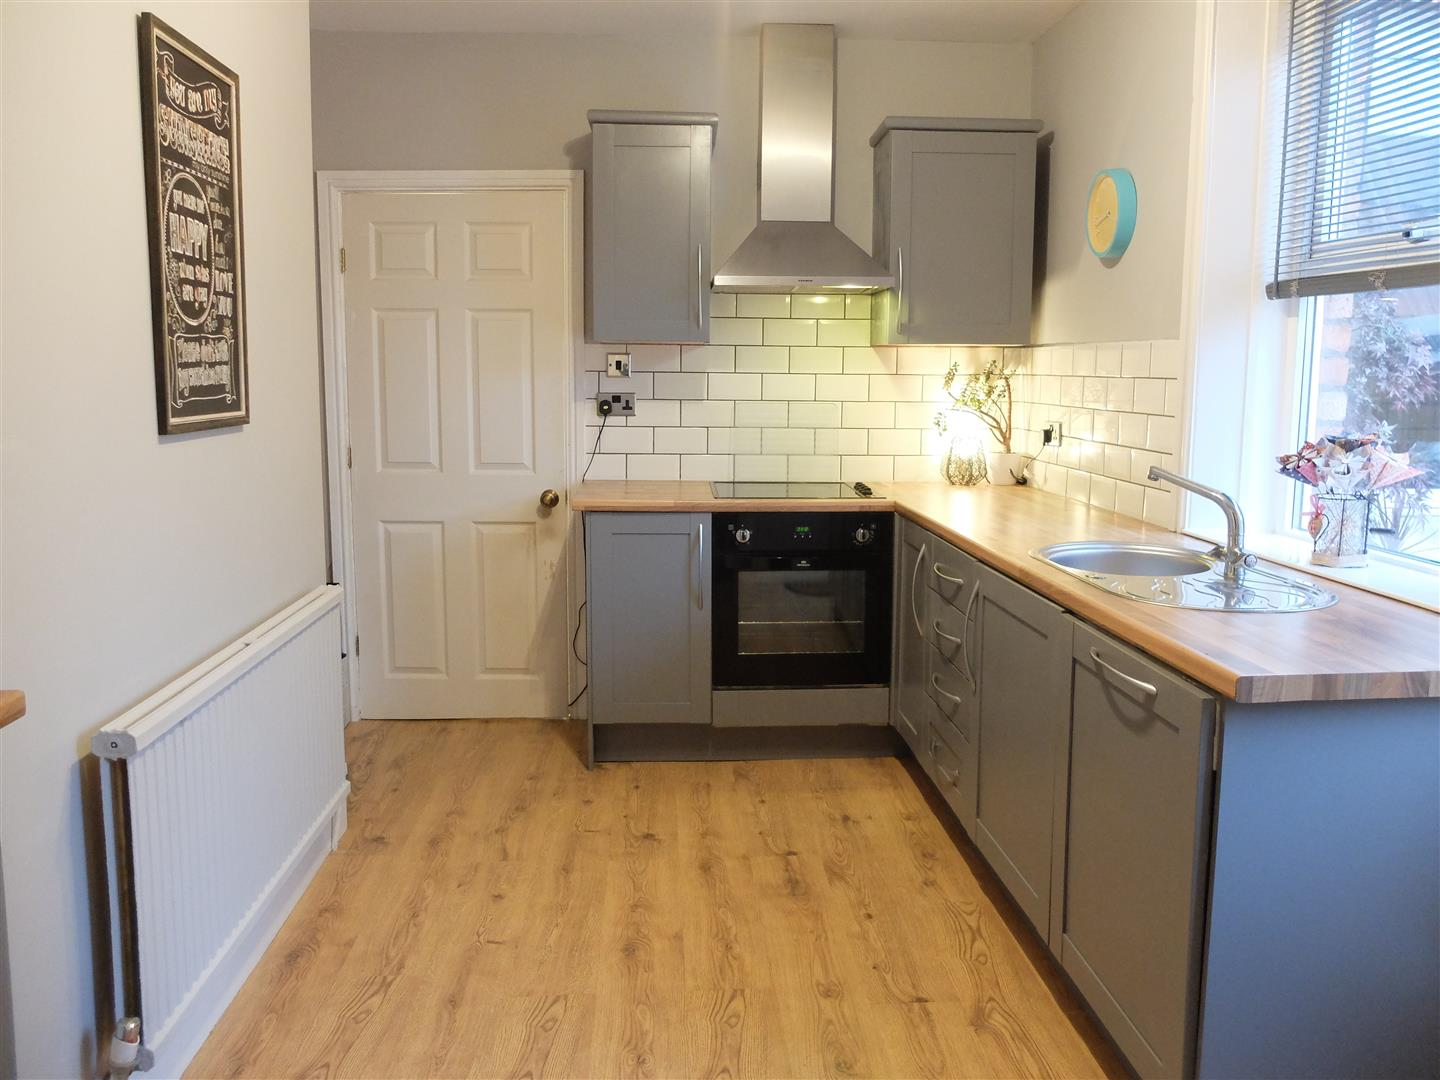 4 Bedrooms House - Terraced For Sale 43 Currock Road Carlisle 149,999